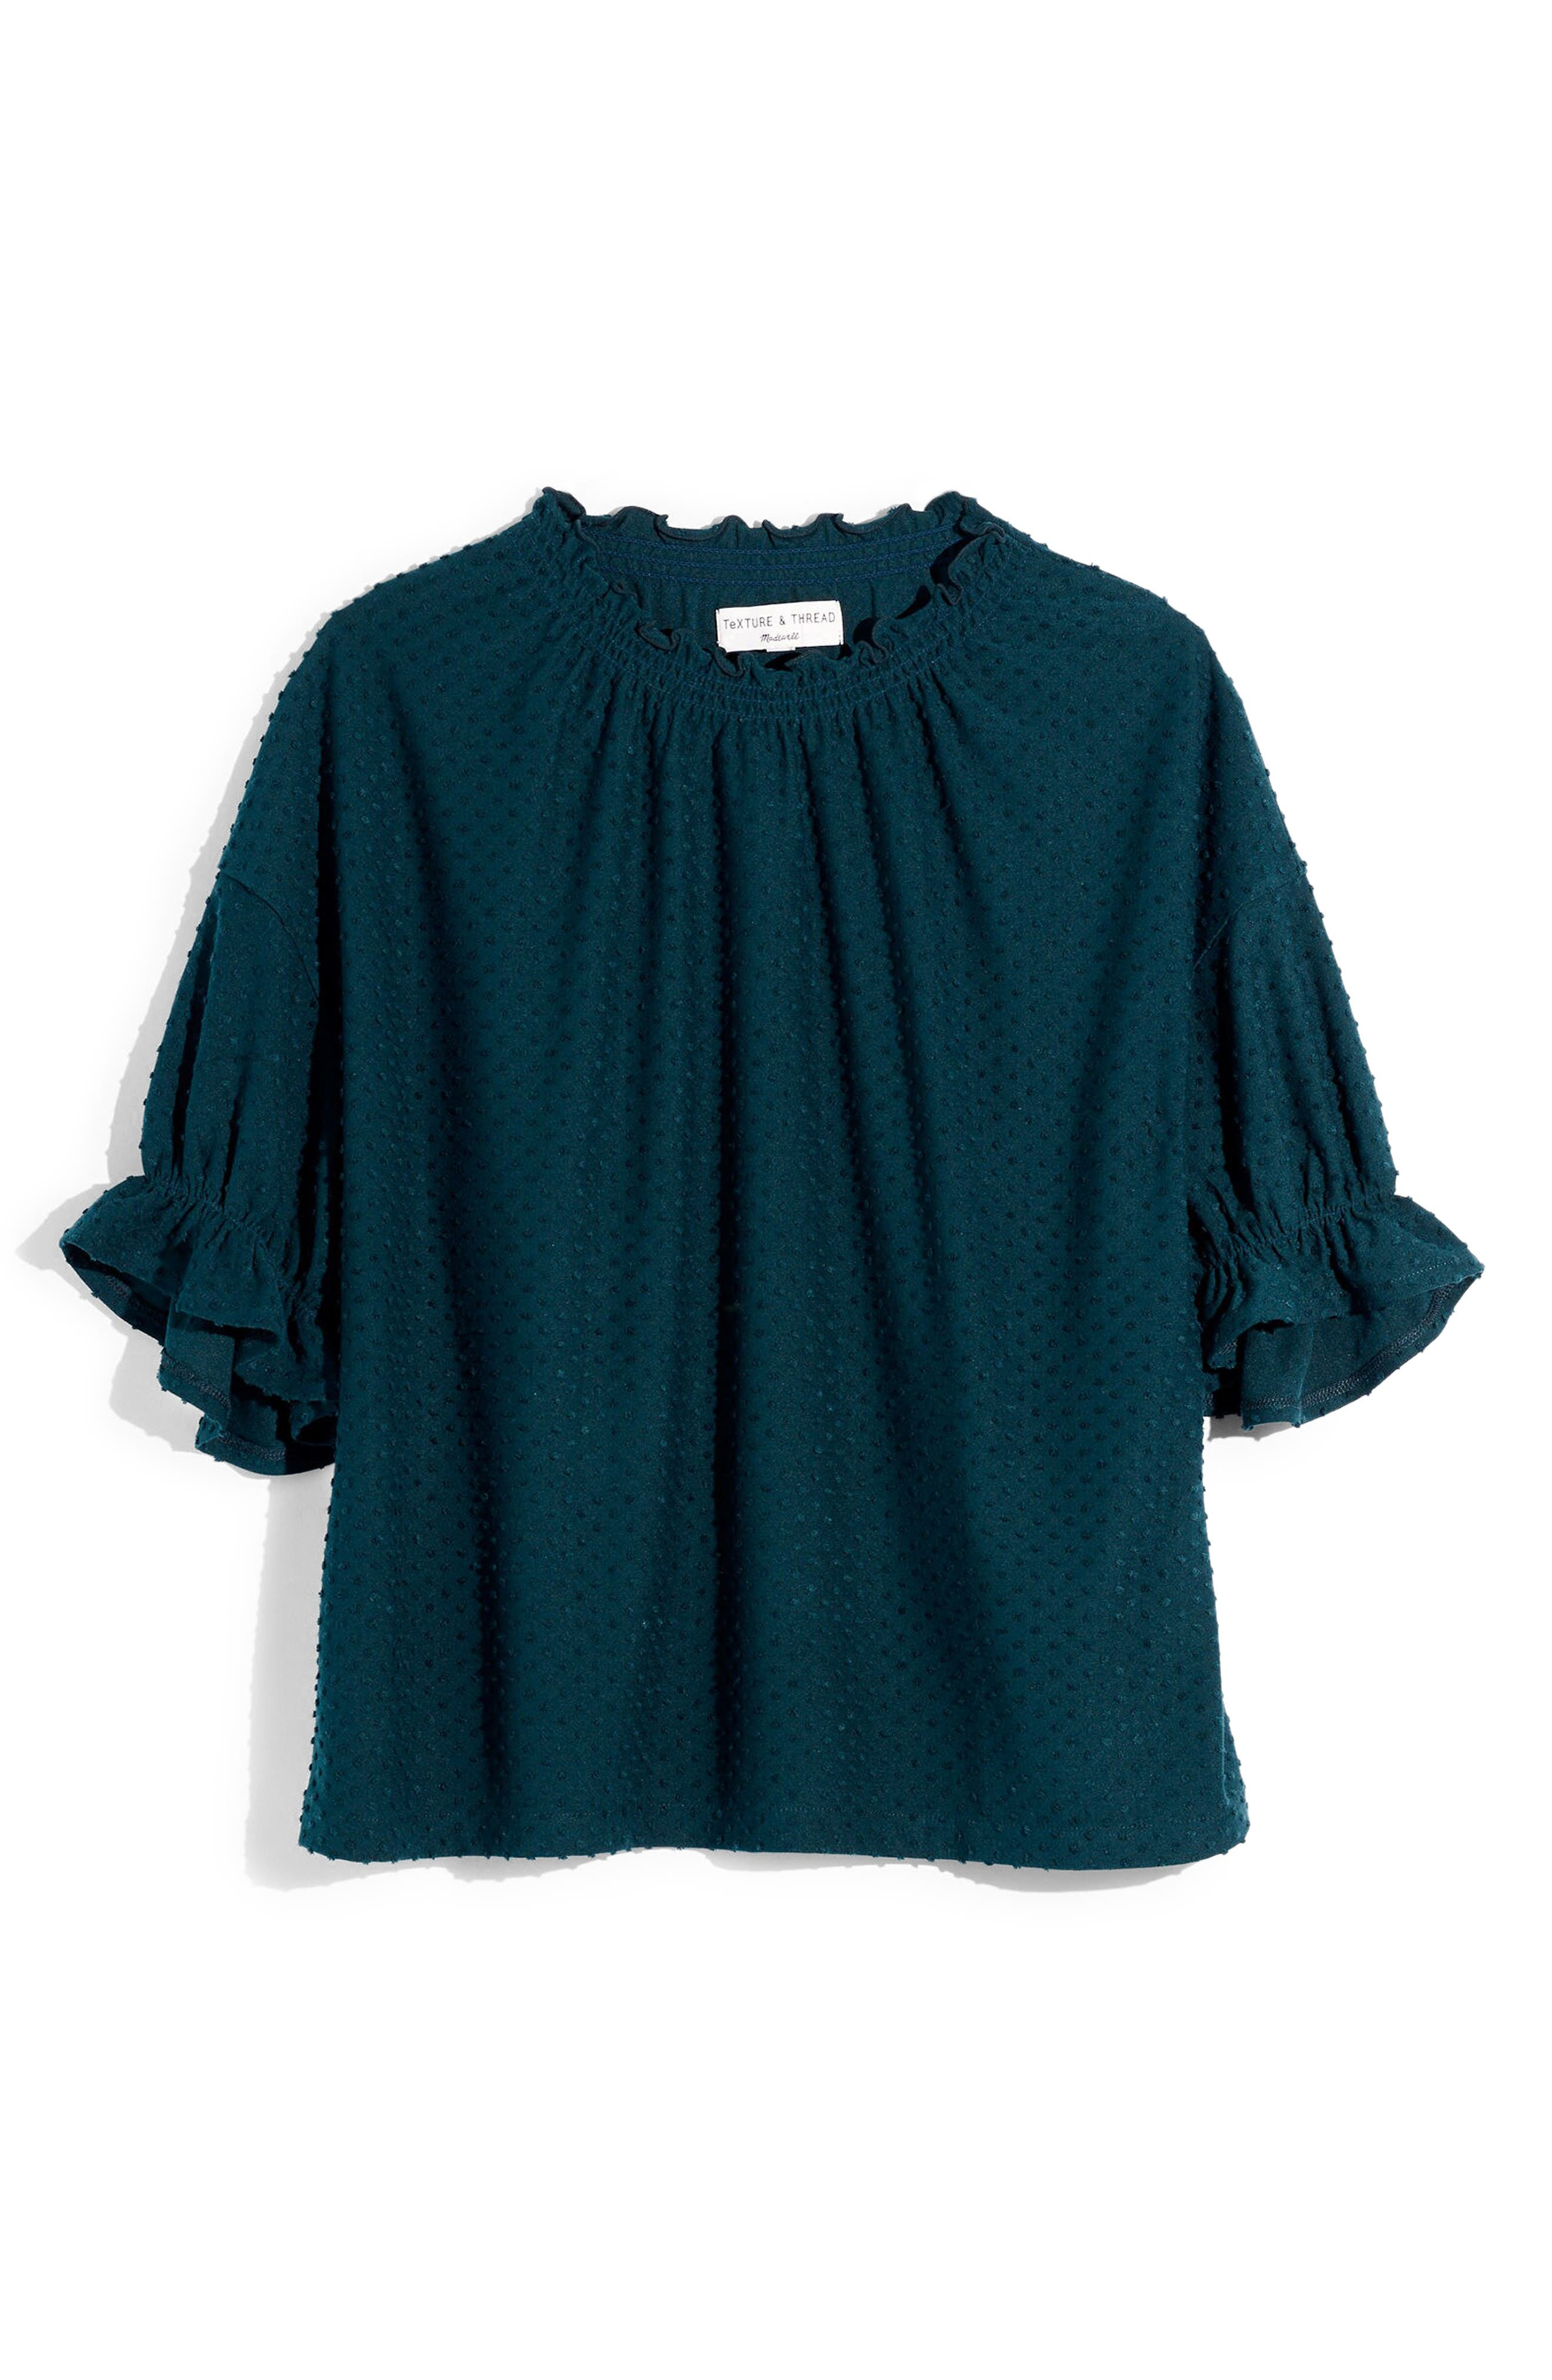 Madewell Texture & Thread Clip Dot Ruffle Top (Regular & Plus Size)